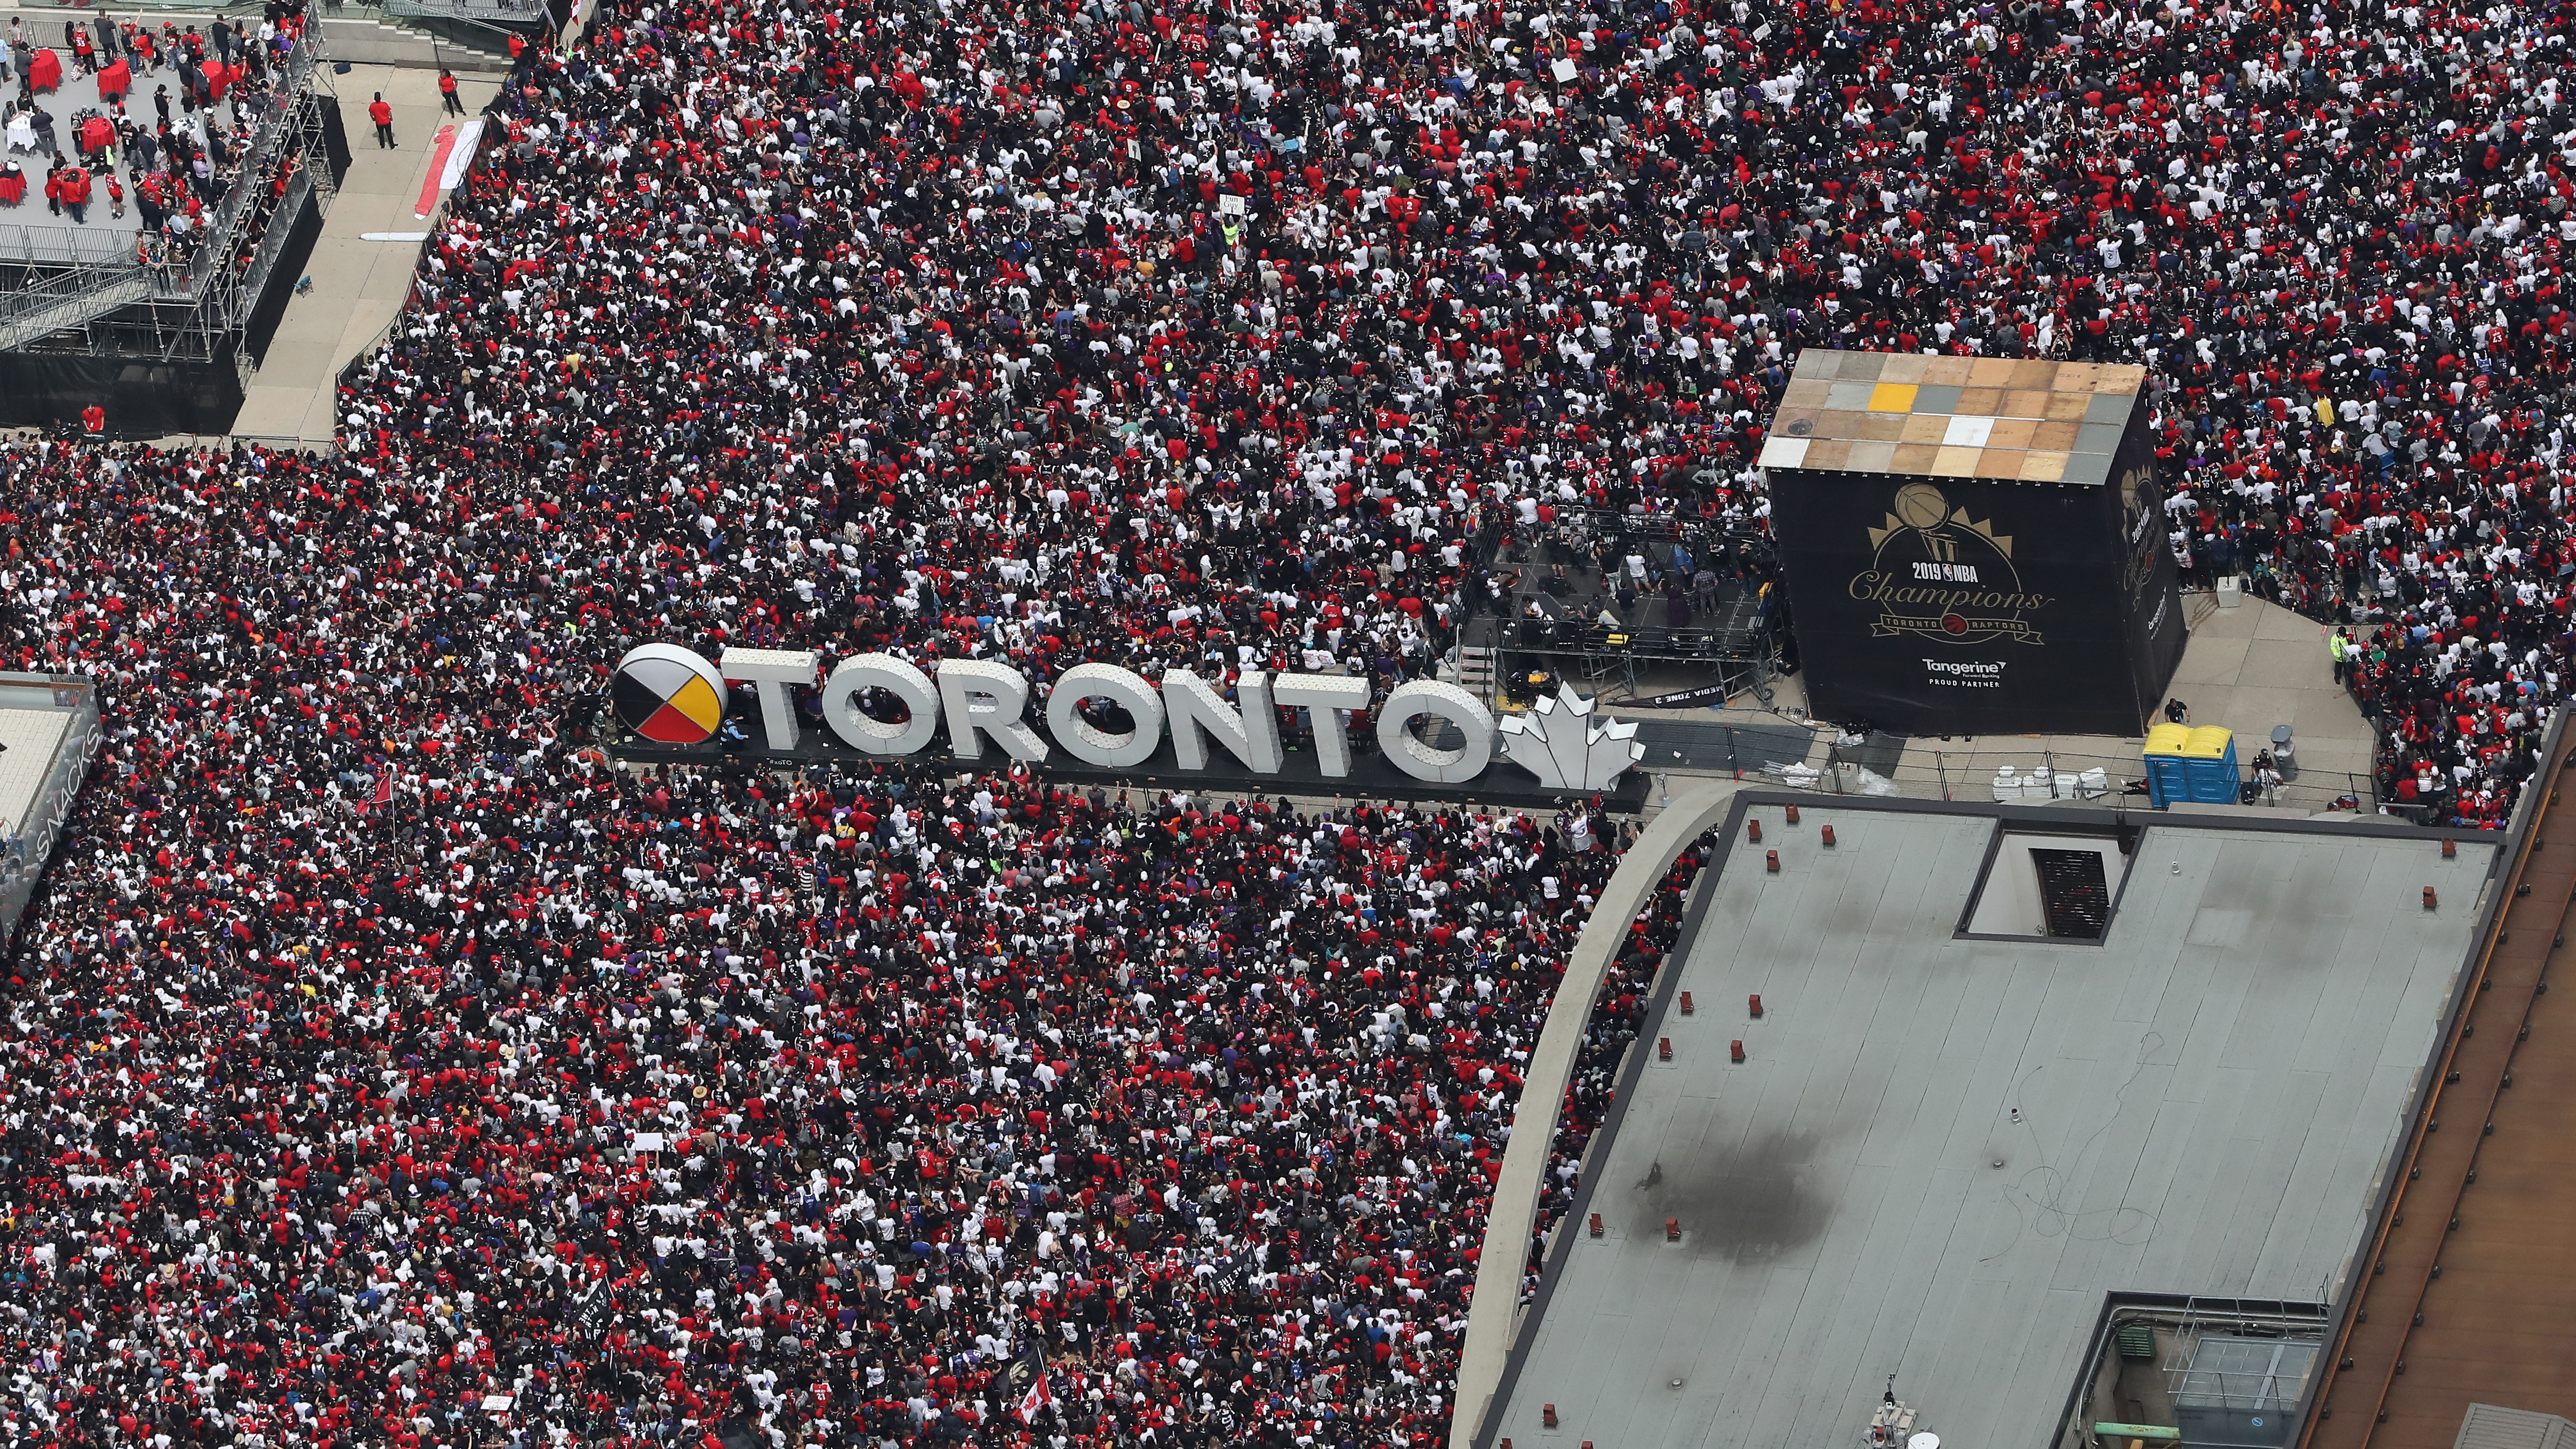 4 Wounded In Shooting At Toronto Raptors Victory Celebration